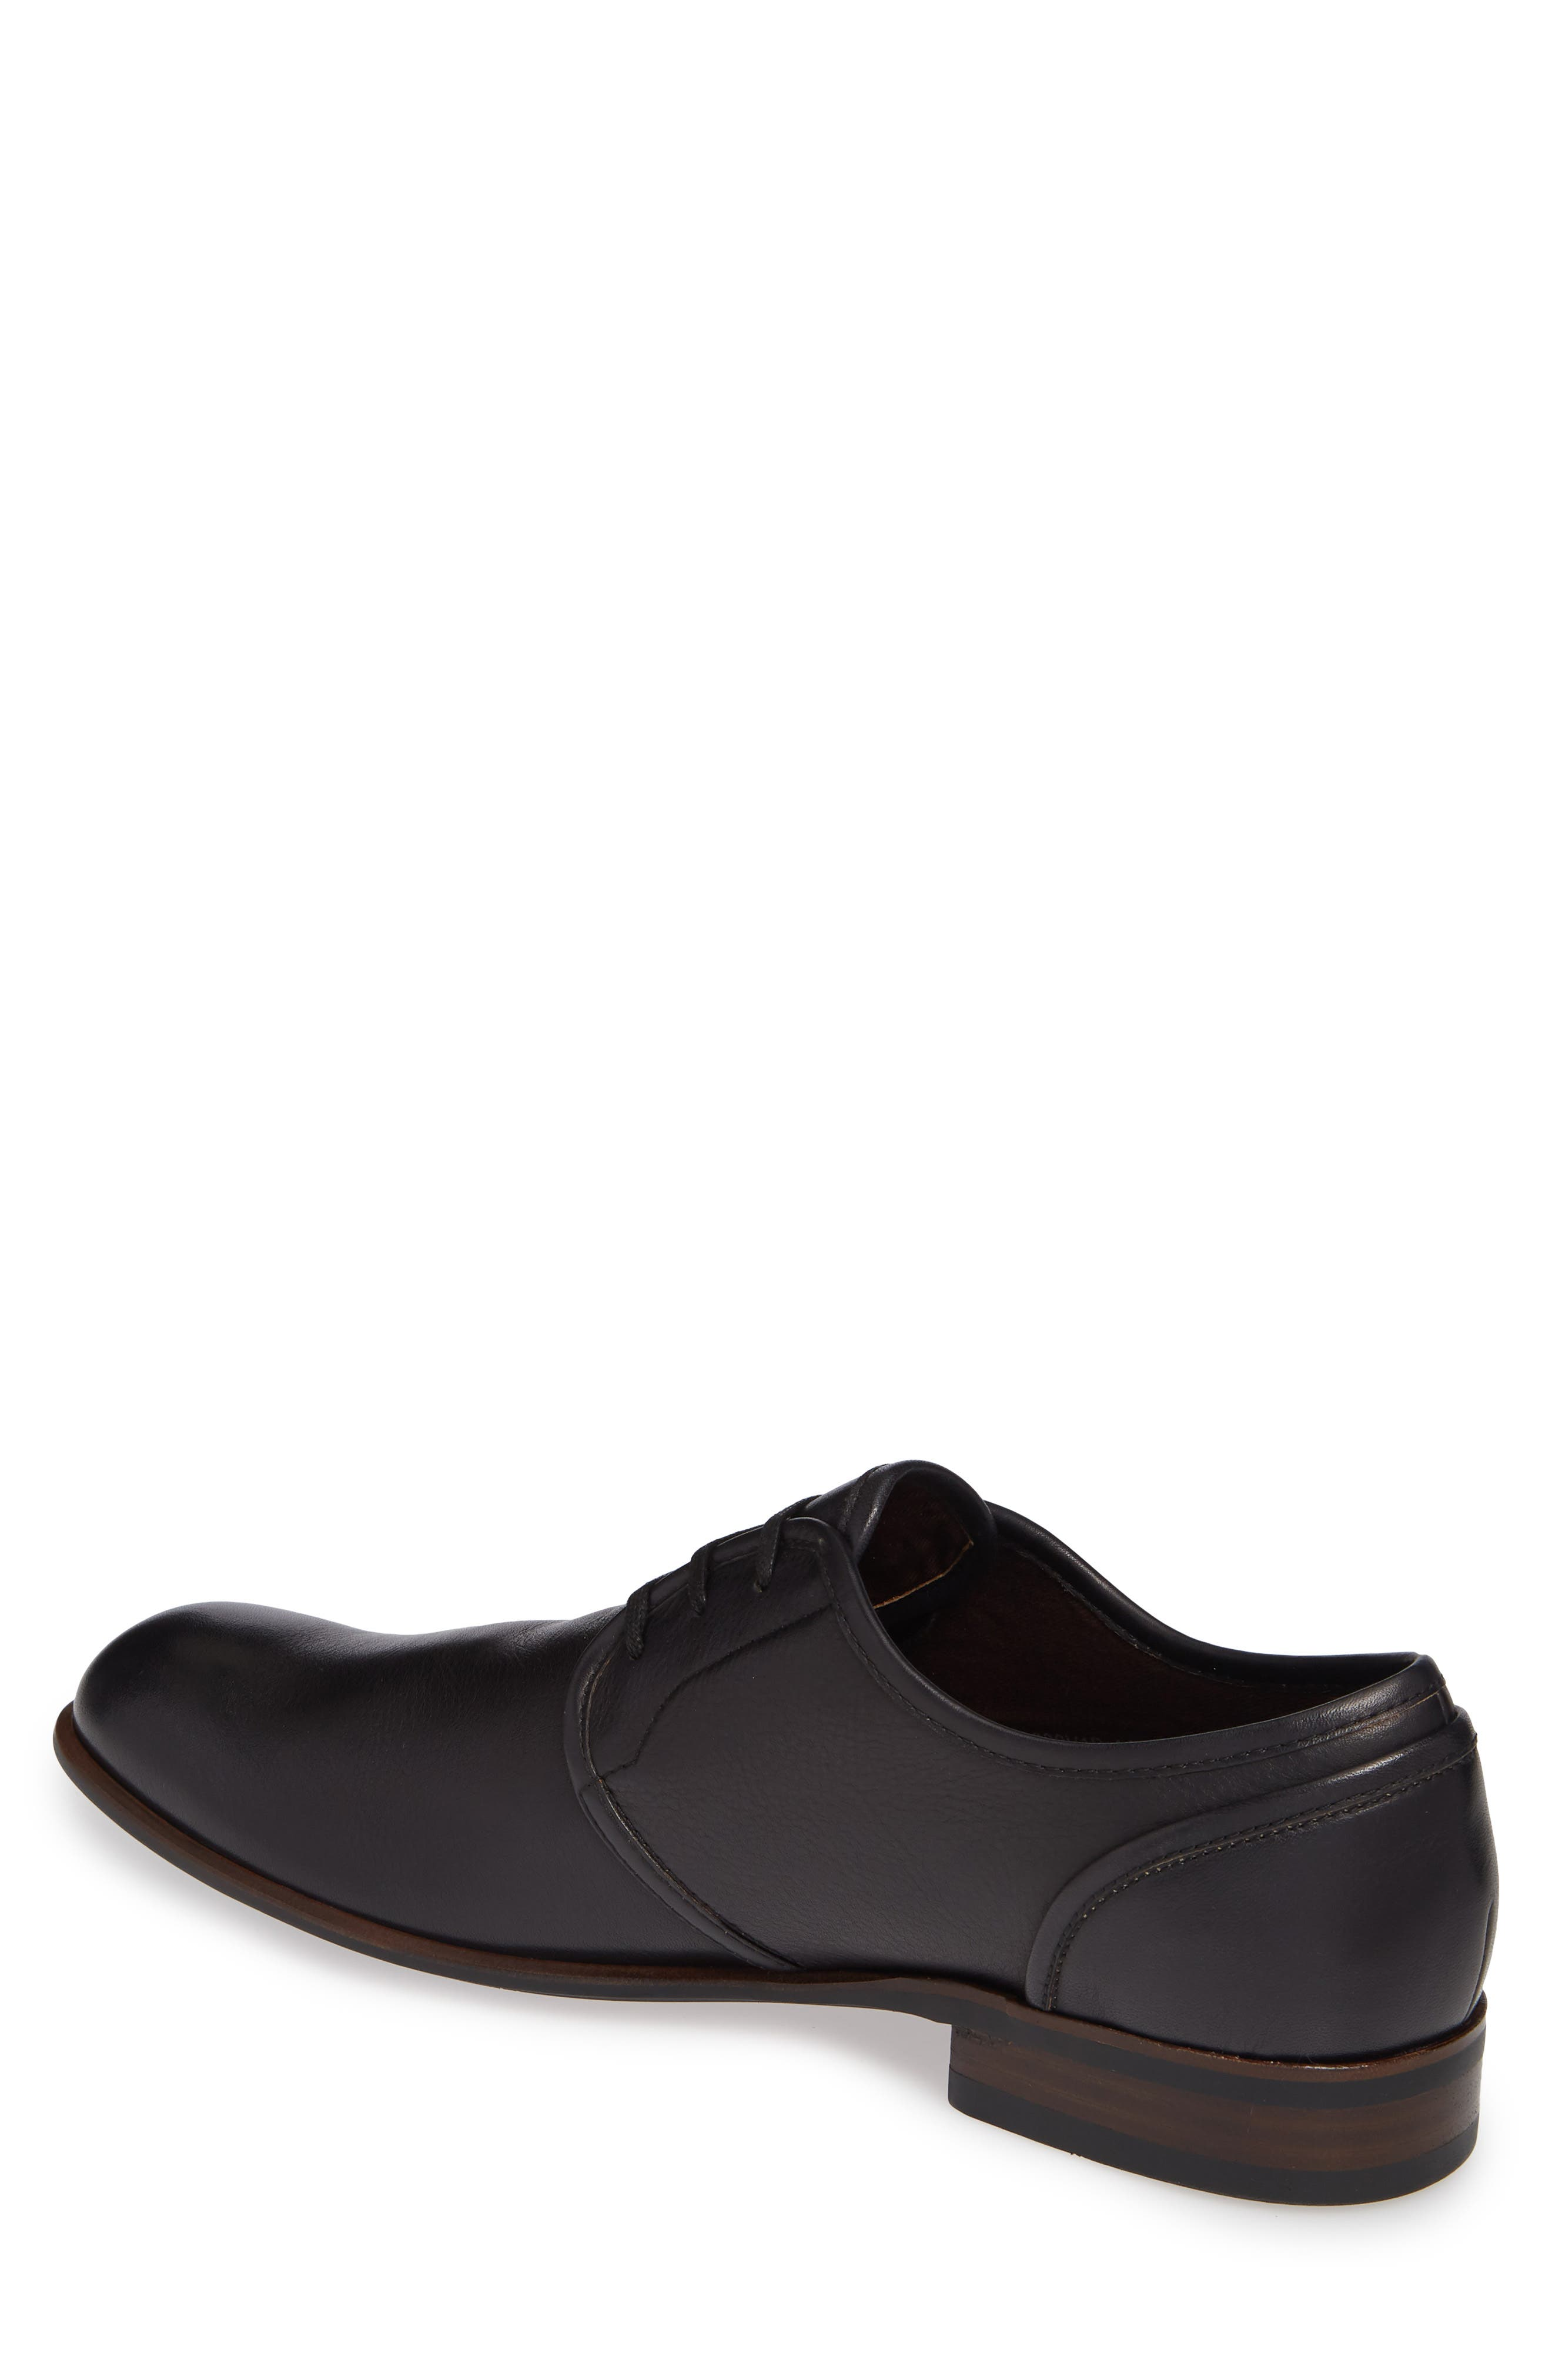 Star USA Seagher Plain Toe Derby,                             Alternate thumbnail 2, color,                             BLACK